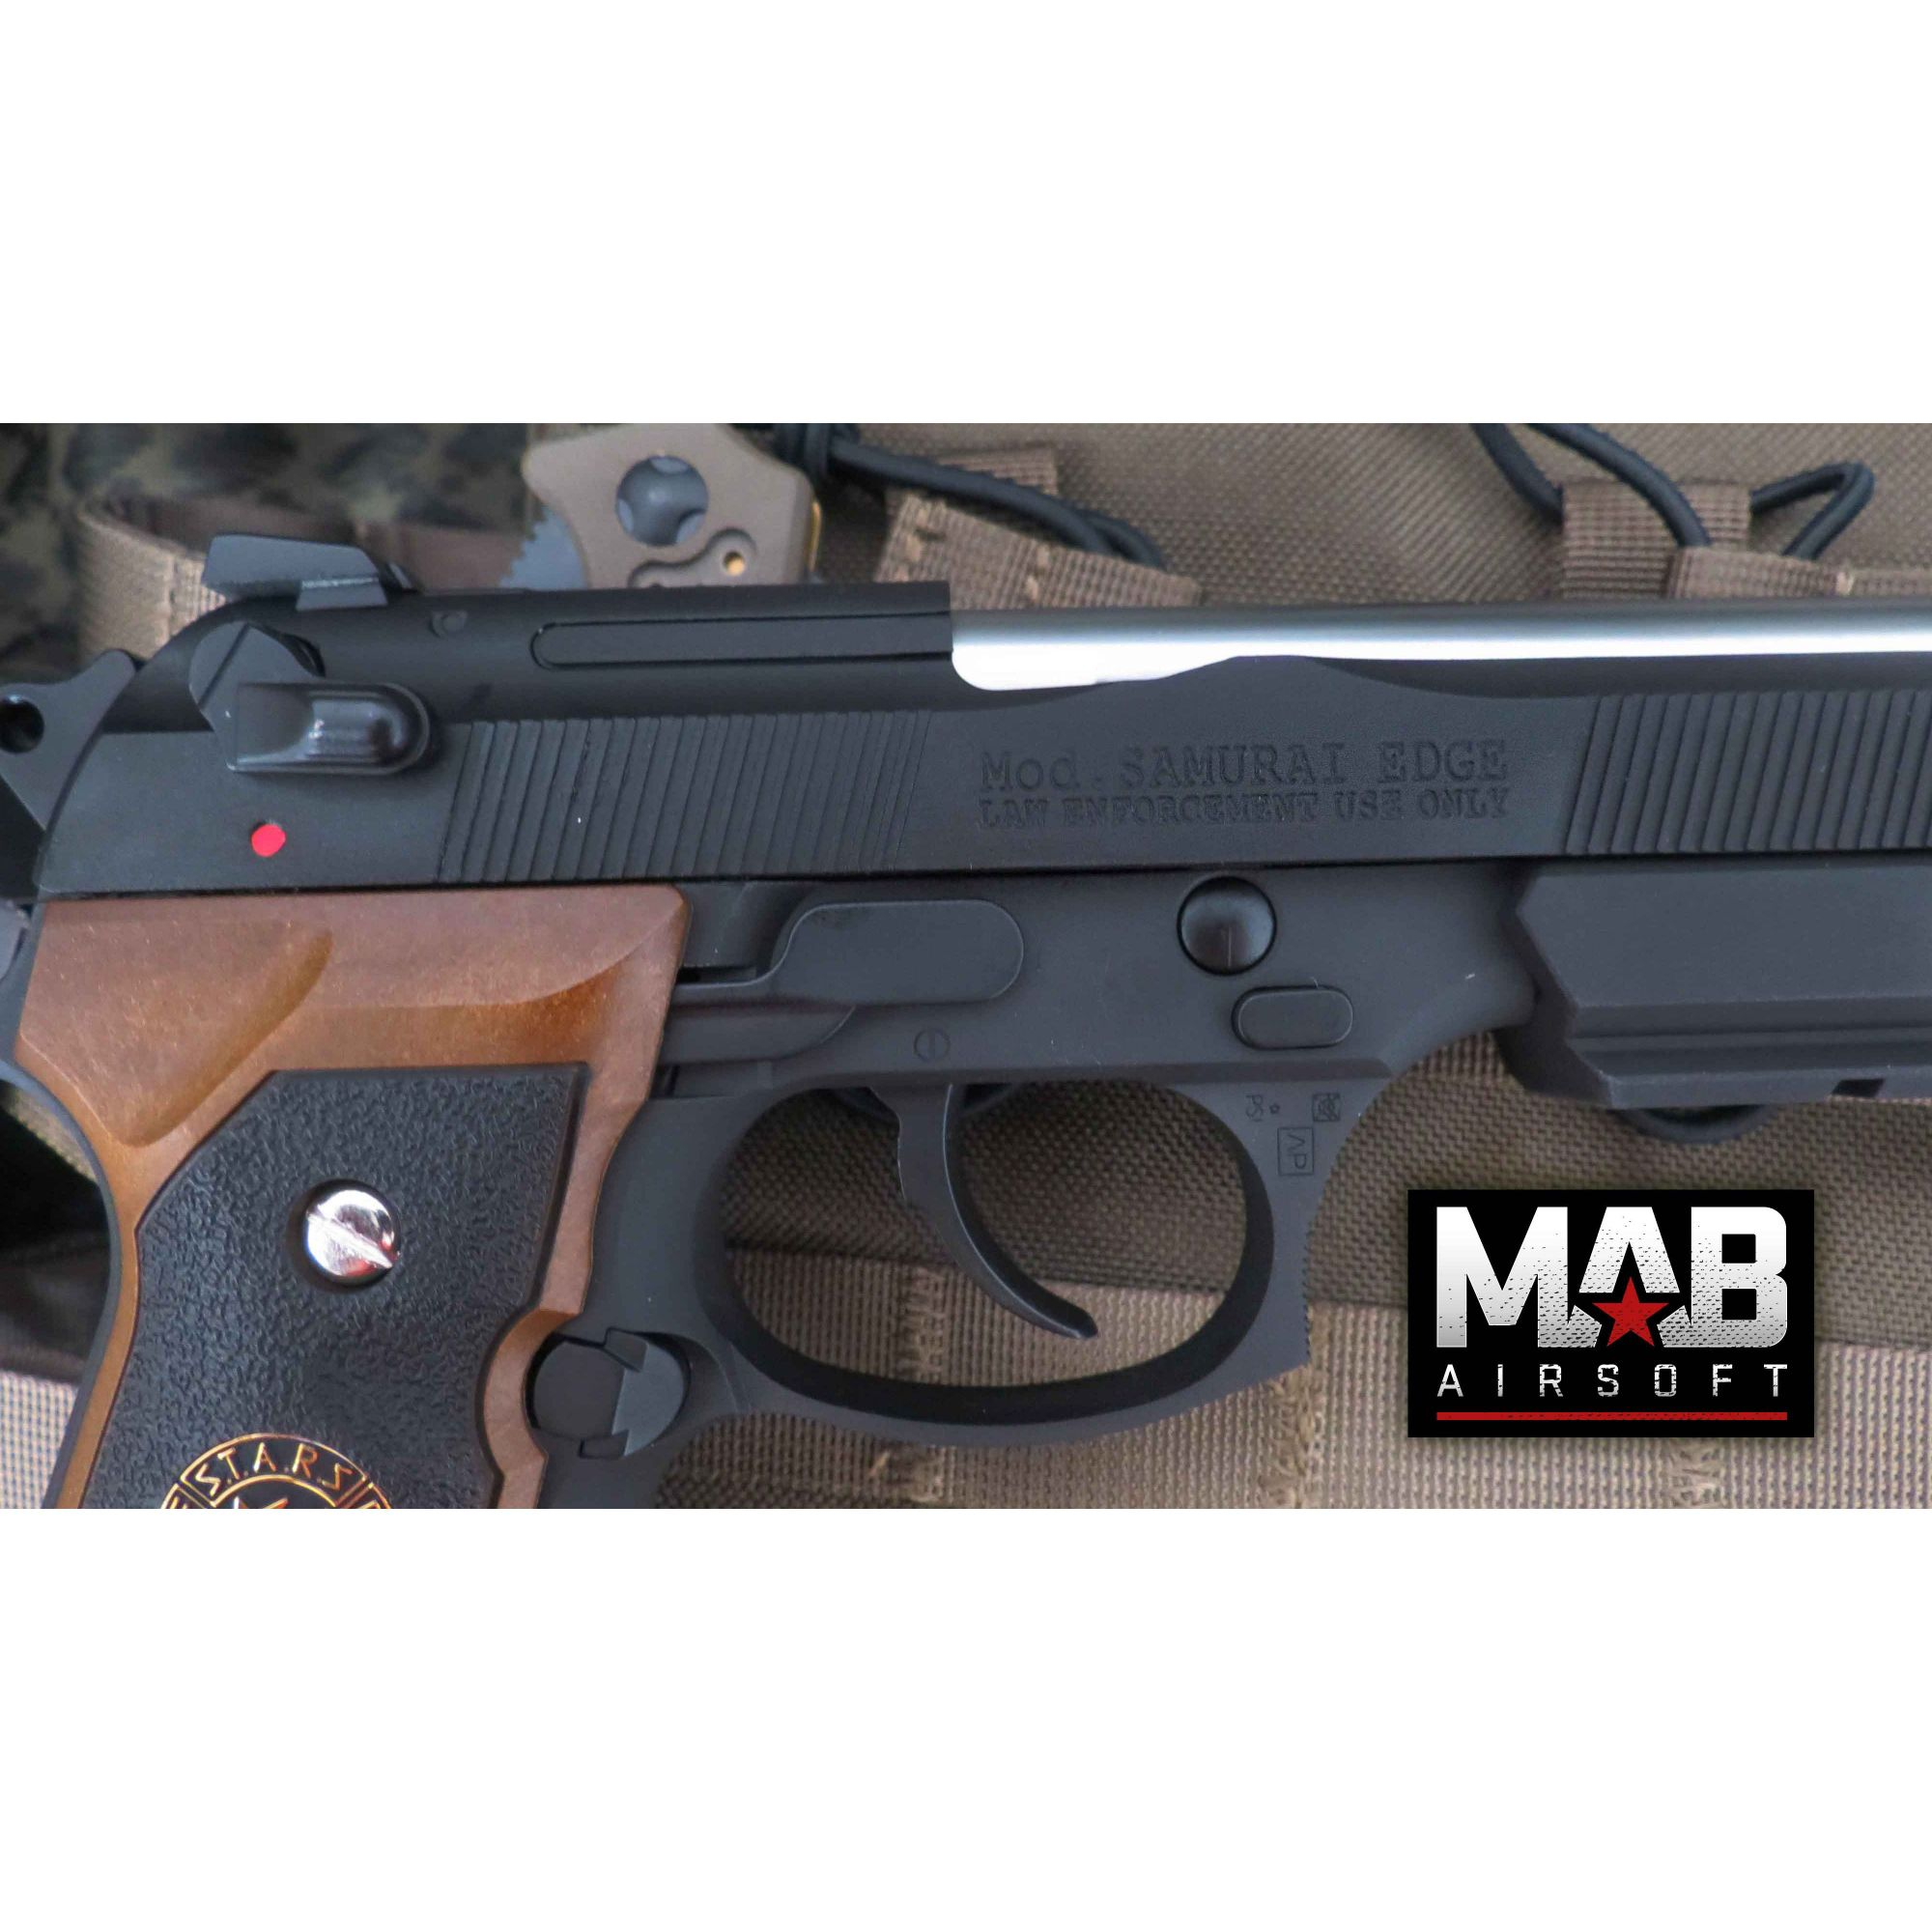 Pistola Airsoft WE M92 Bioharzard Extend Black B.Burton - Calibre 6 mm - MAB AIRSOFT